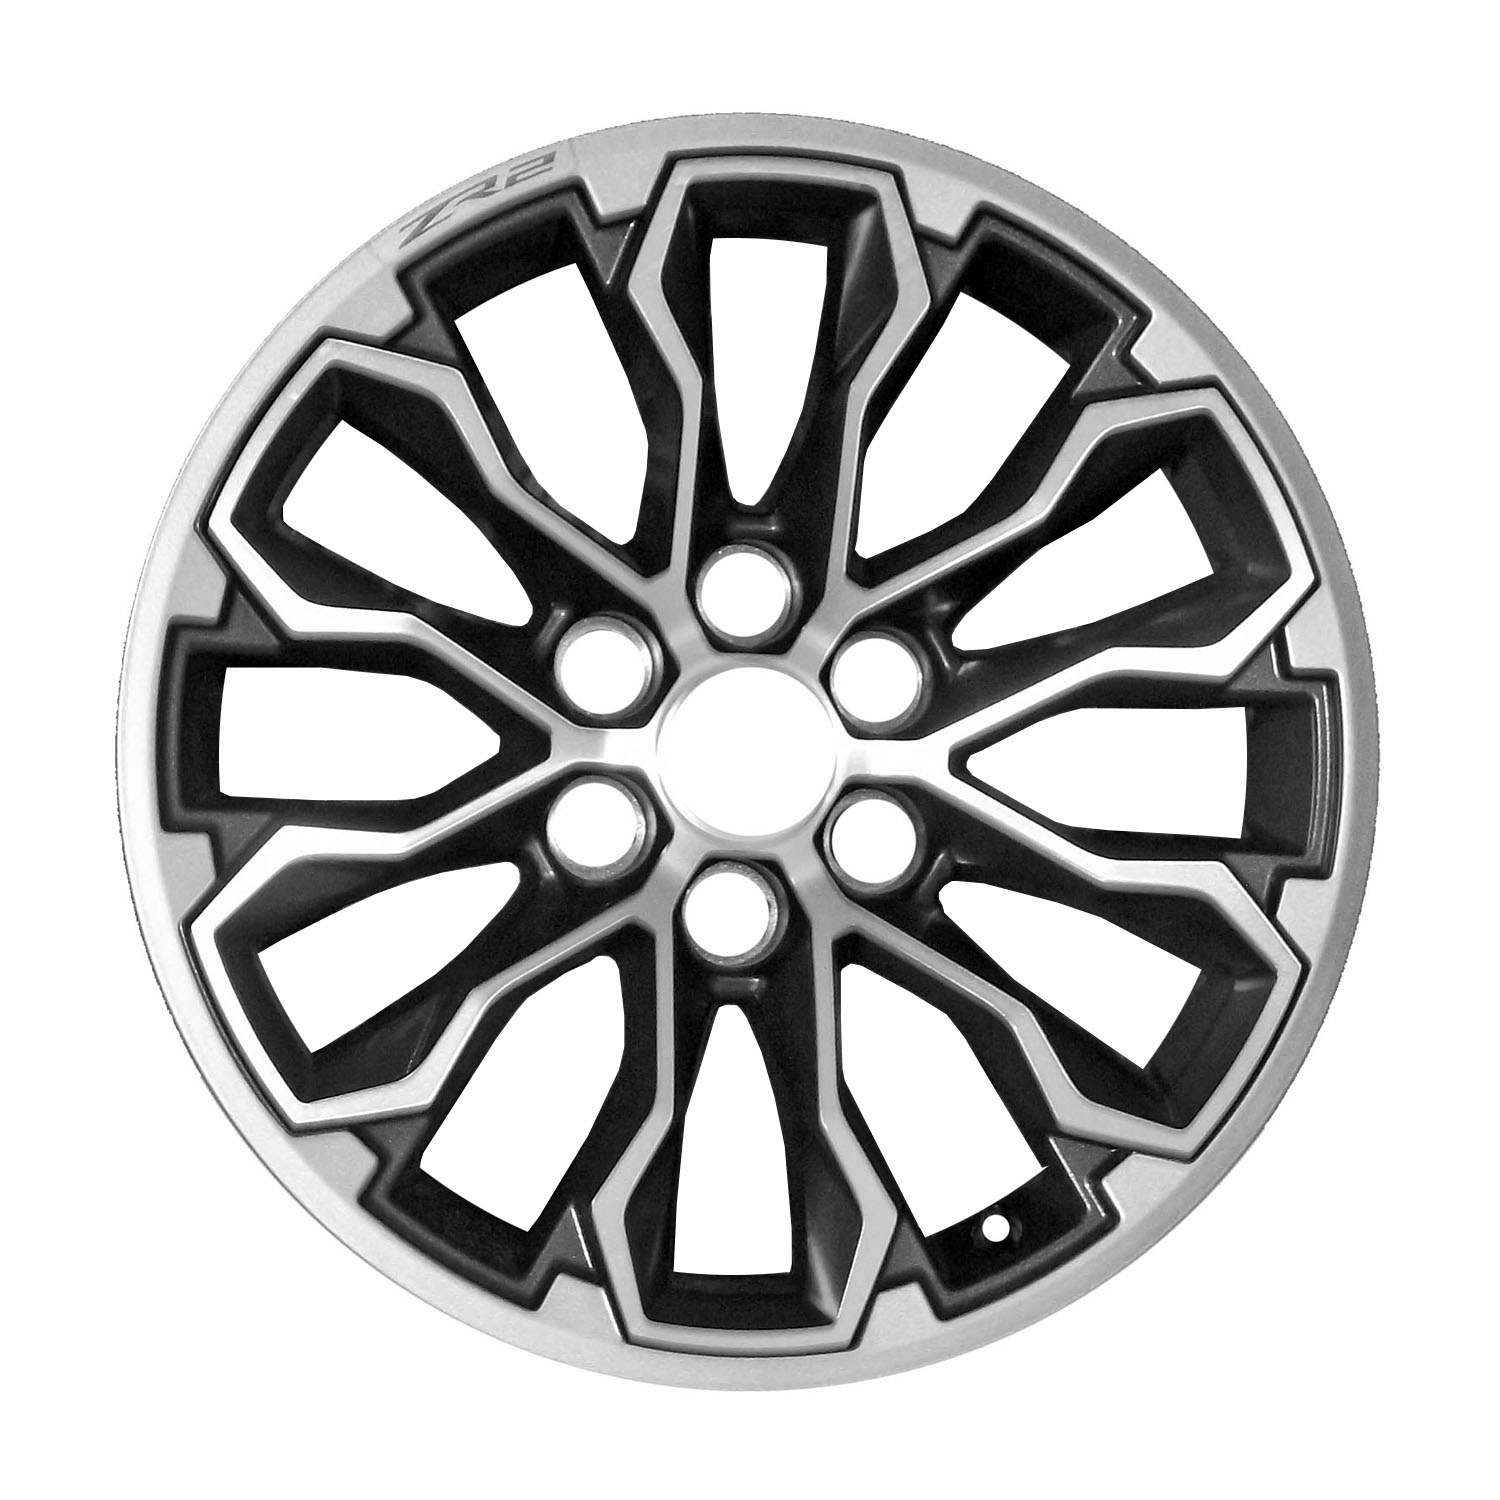 97950 reconditioned oem aluminum 17x8 wheel fits 2017 chevrolet Chevy Colorado Extended Cab Rear Seats 97950 reconditioned oem aluminum 17x8 wheel fits 2017 chevrolet colorado